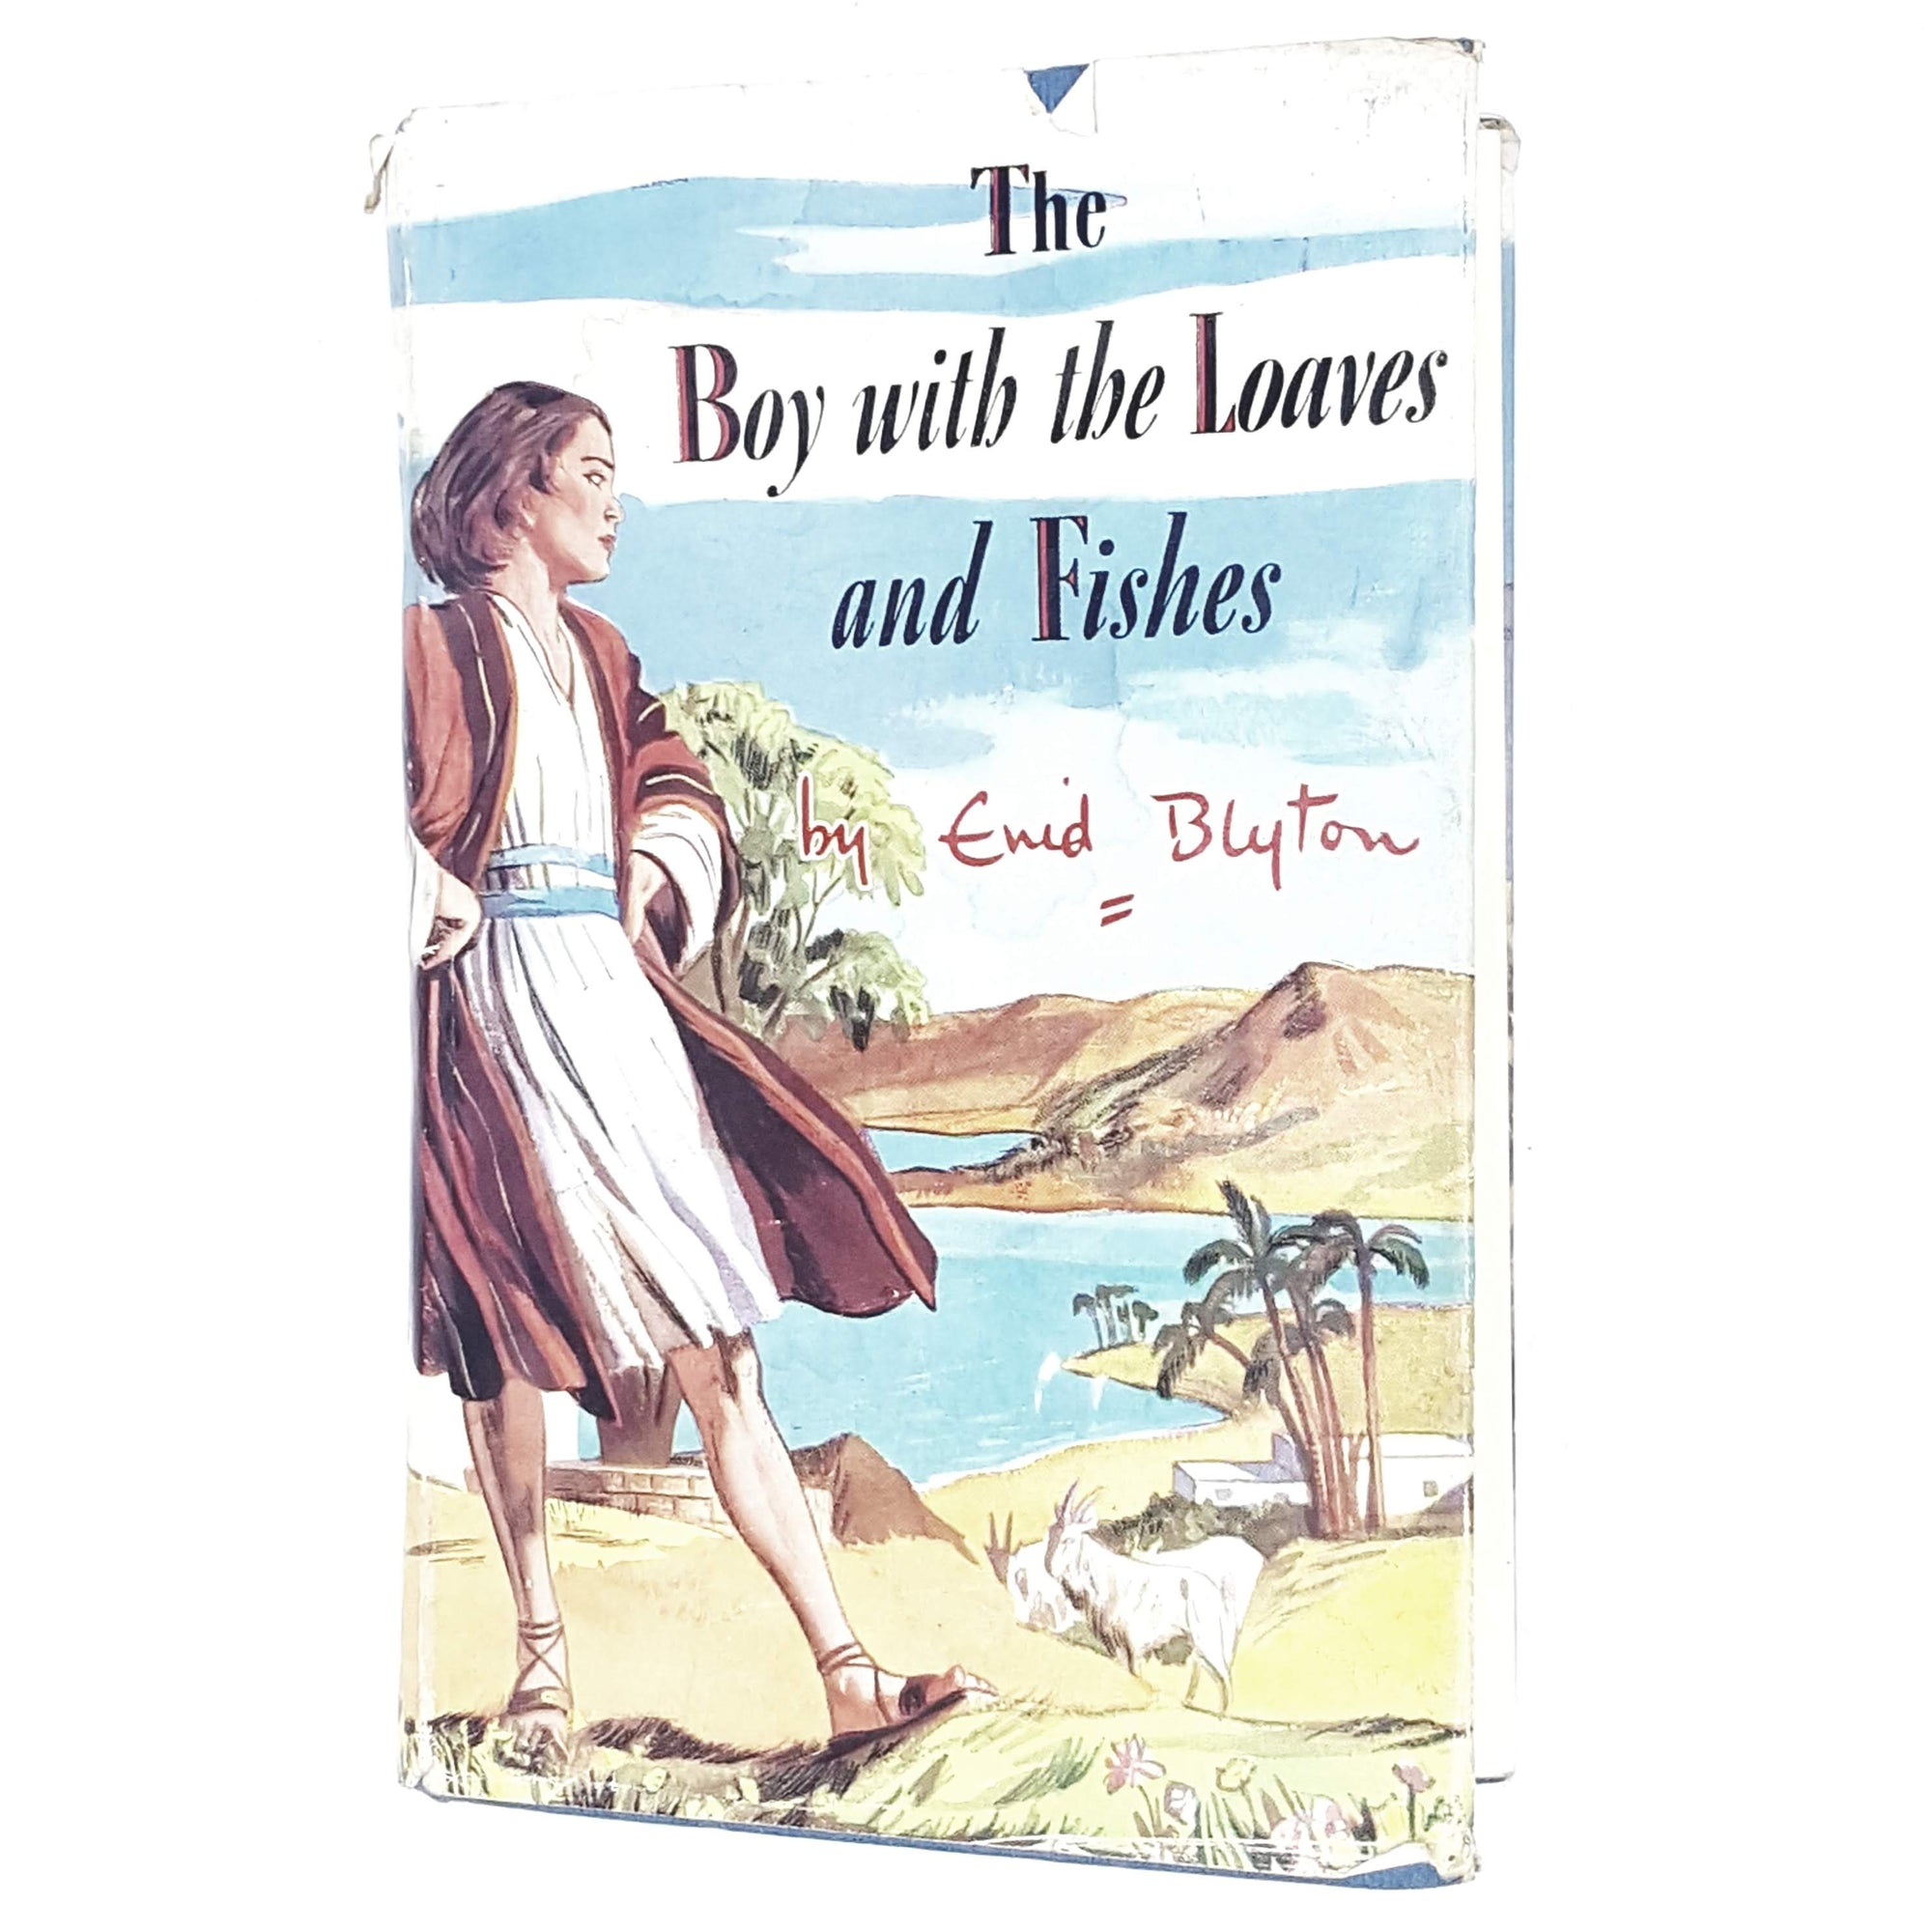 Enid Blyton's The Boy with the Loaves and Fishes 1961